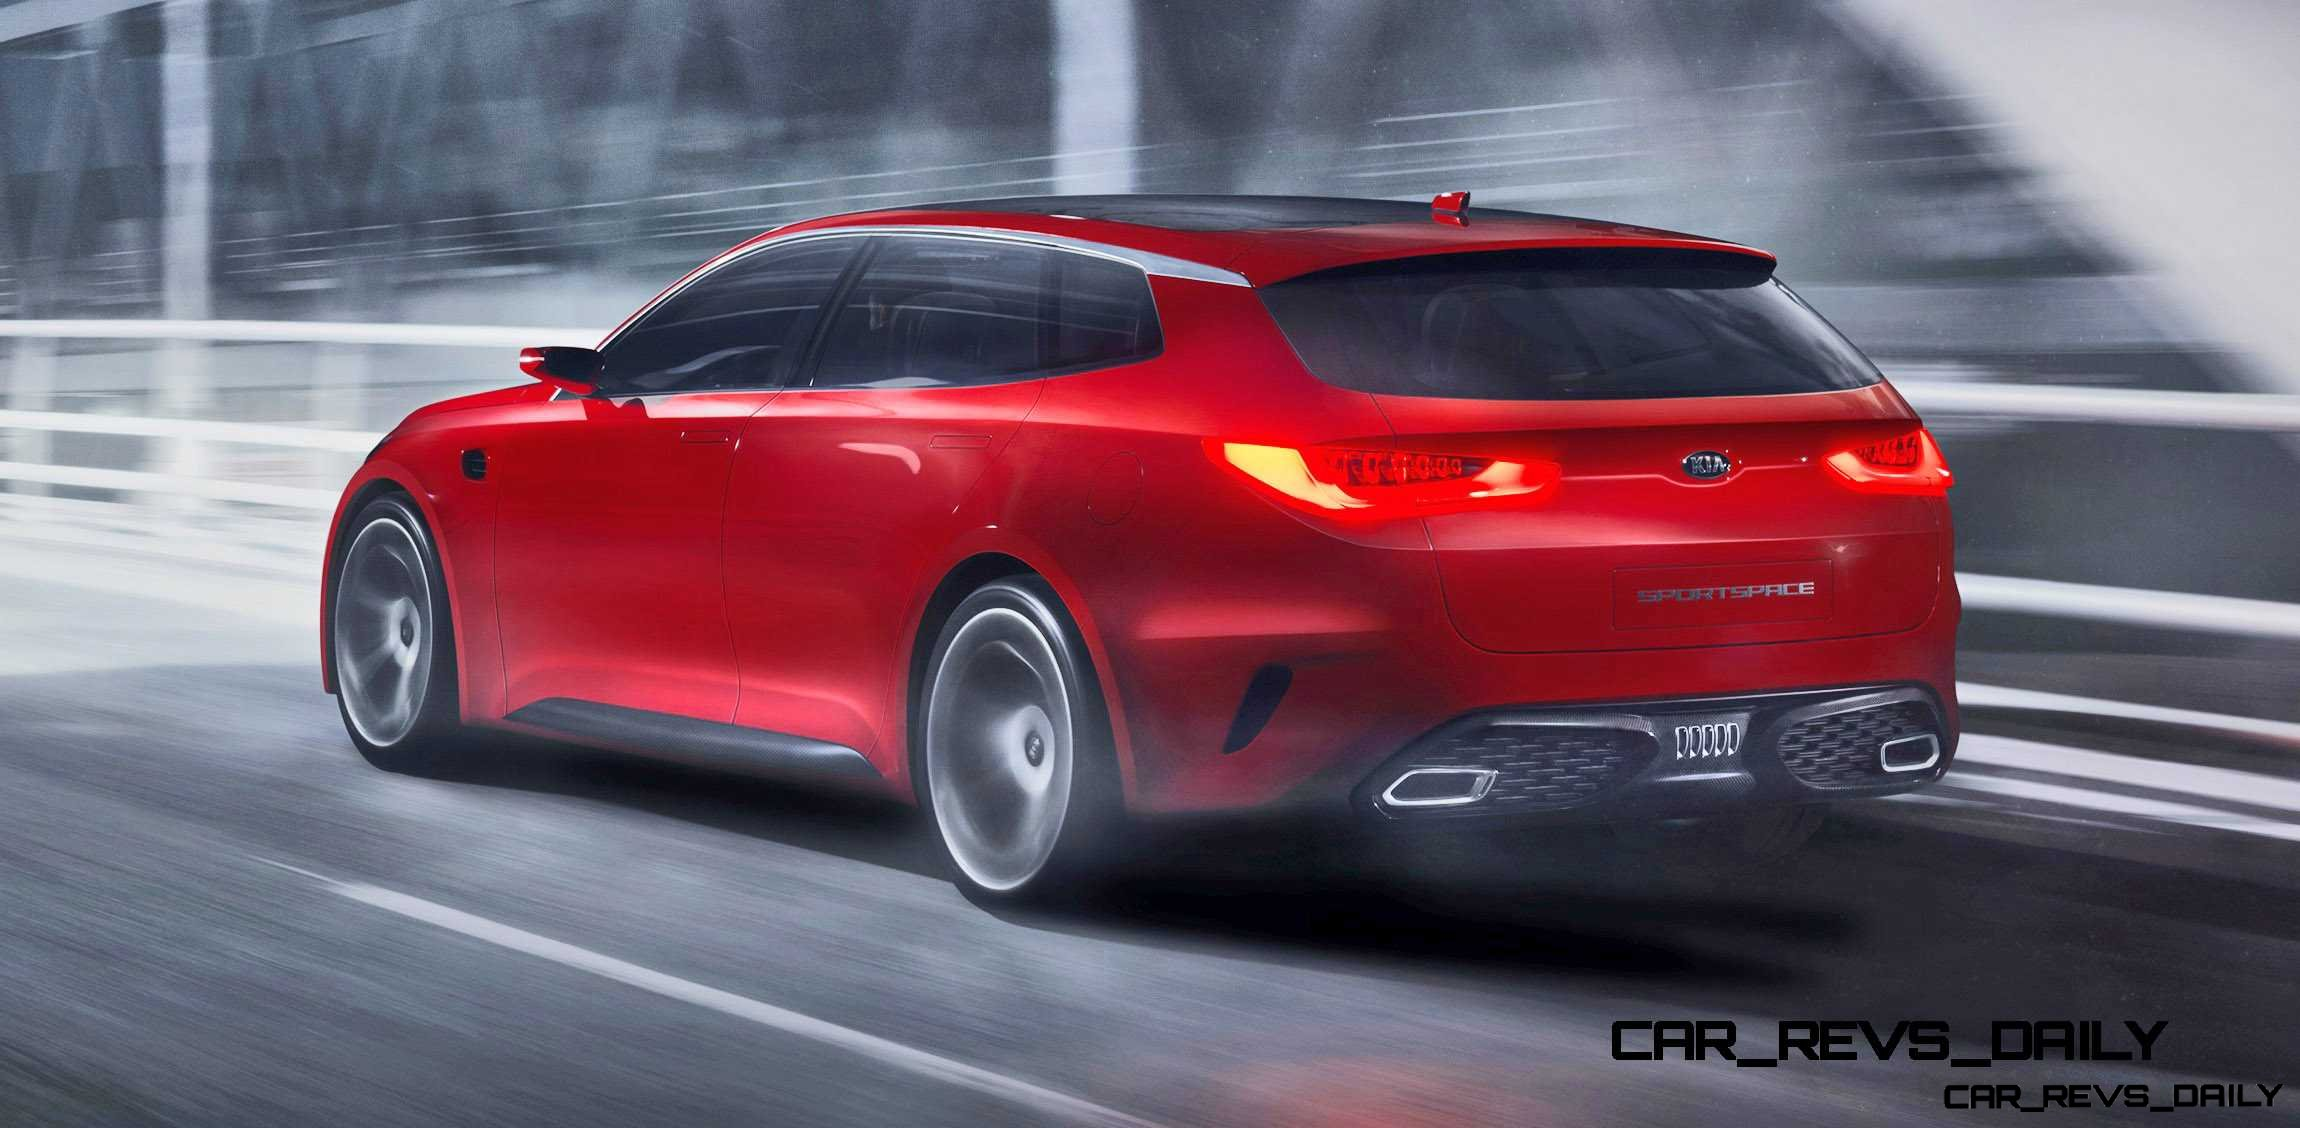 2015 Kia SPORTSPACE Concept - Latest Photos 3